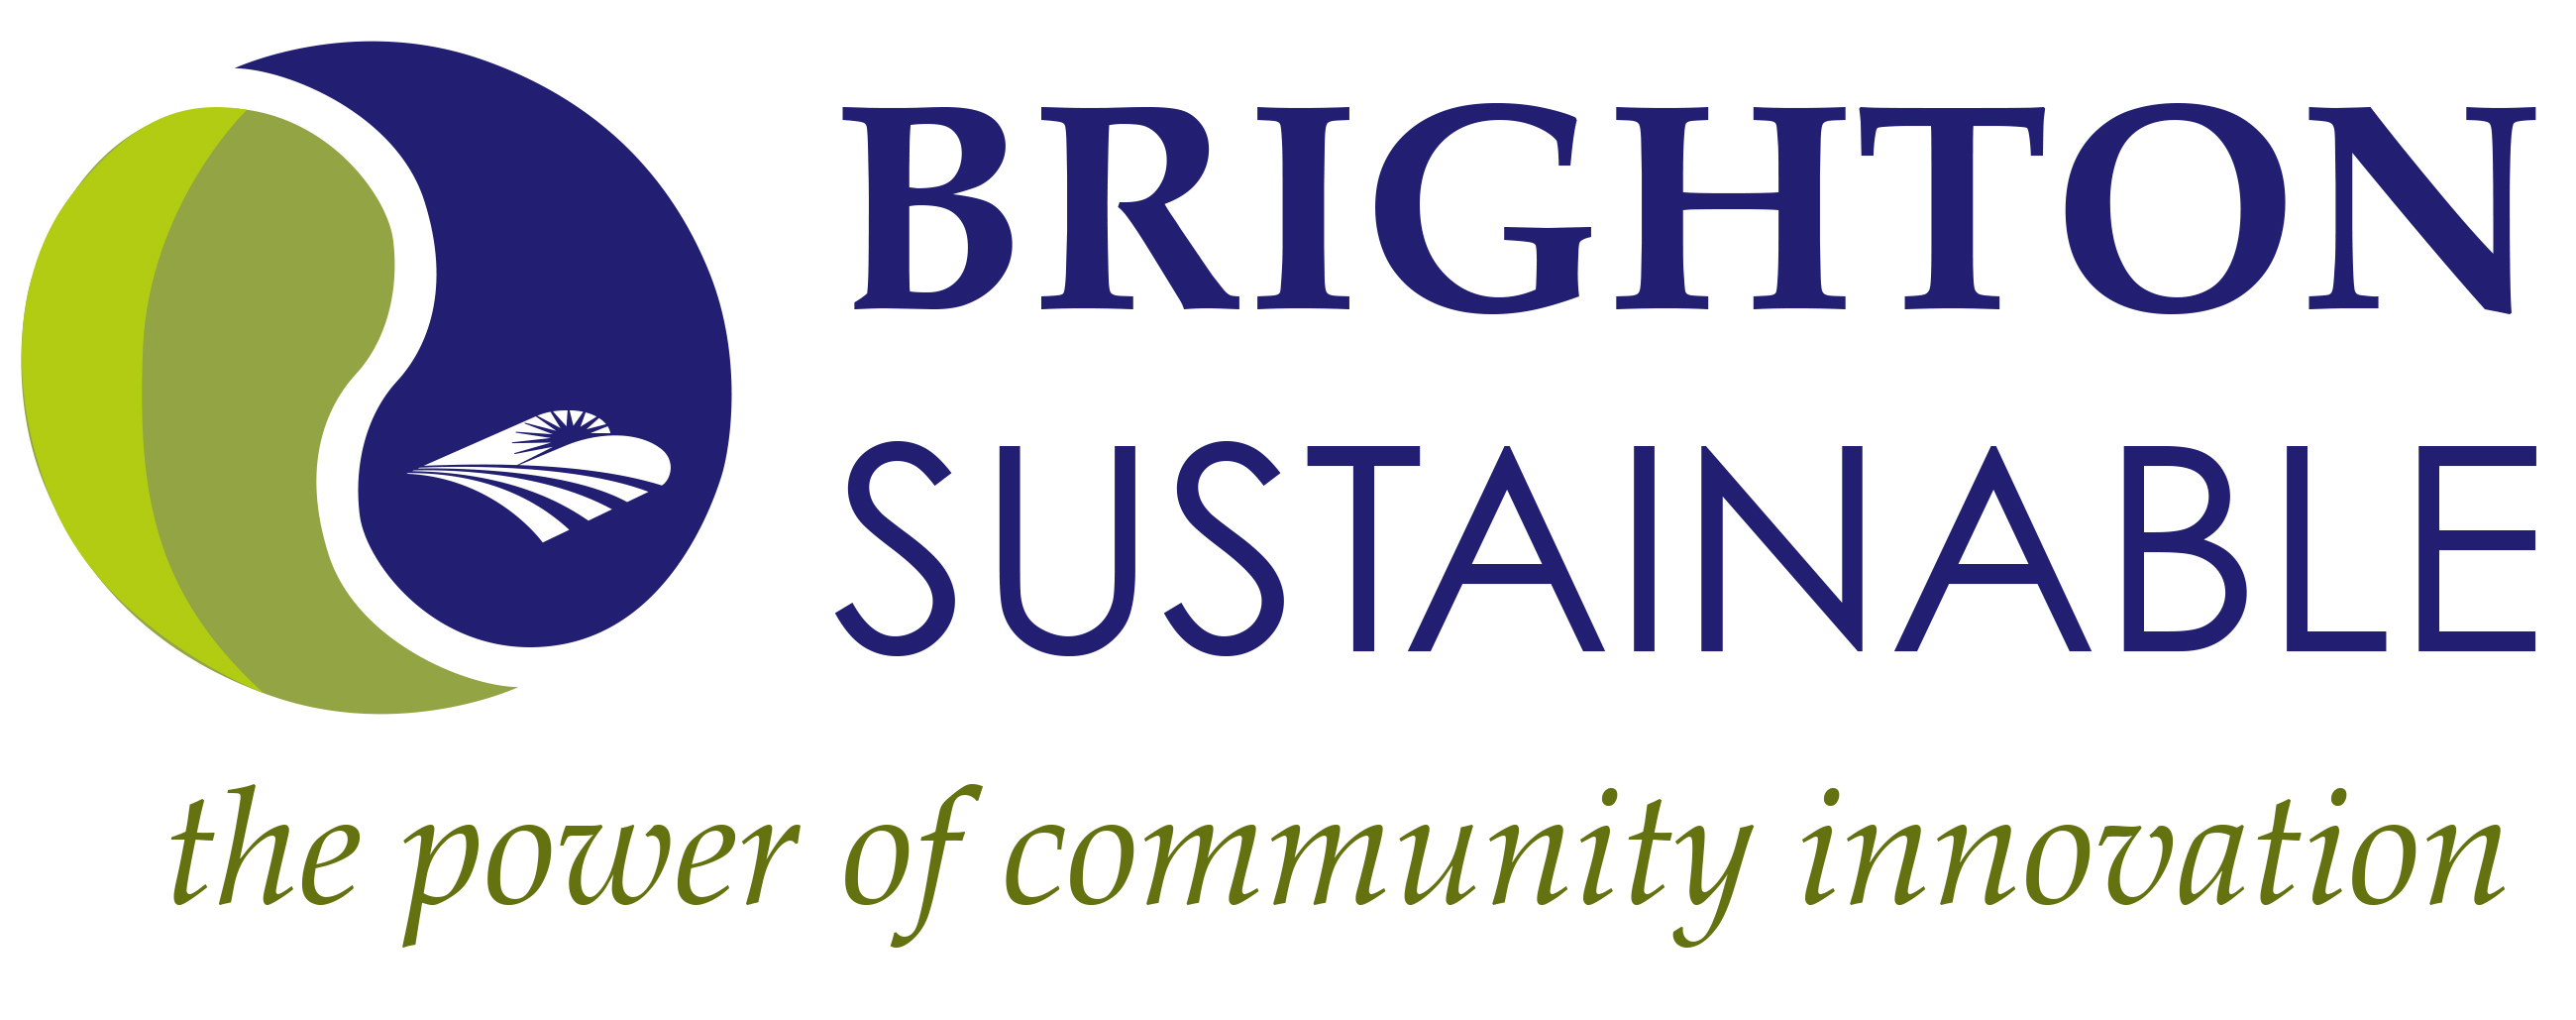 BrightonSustain